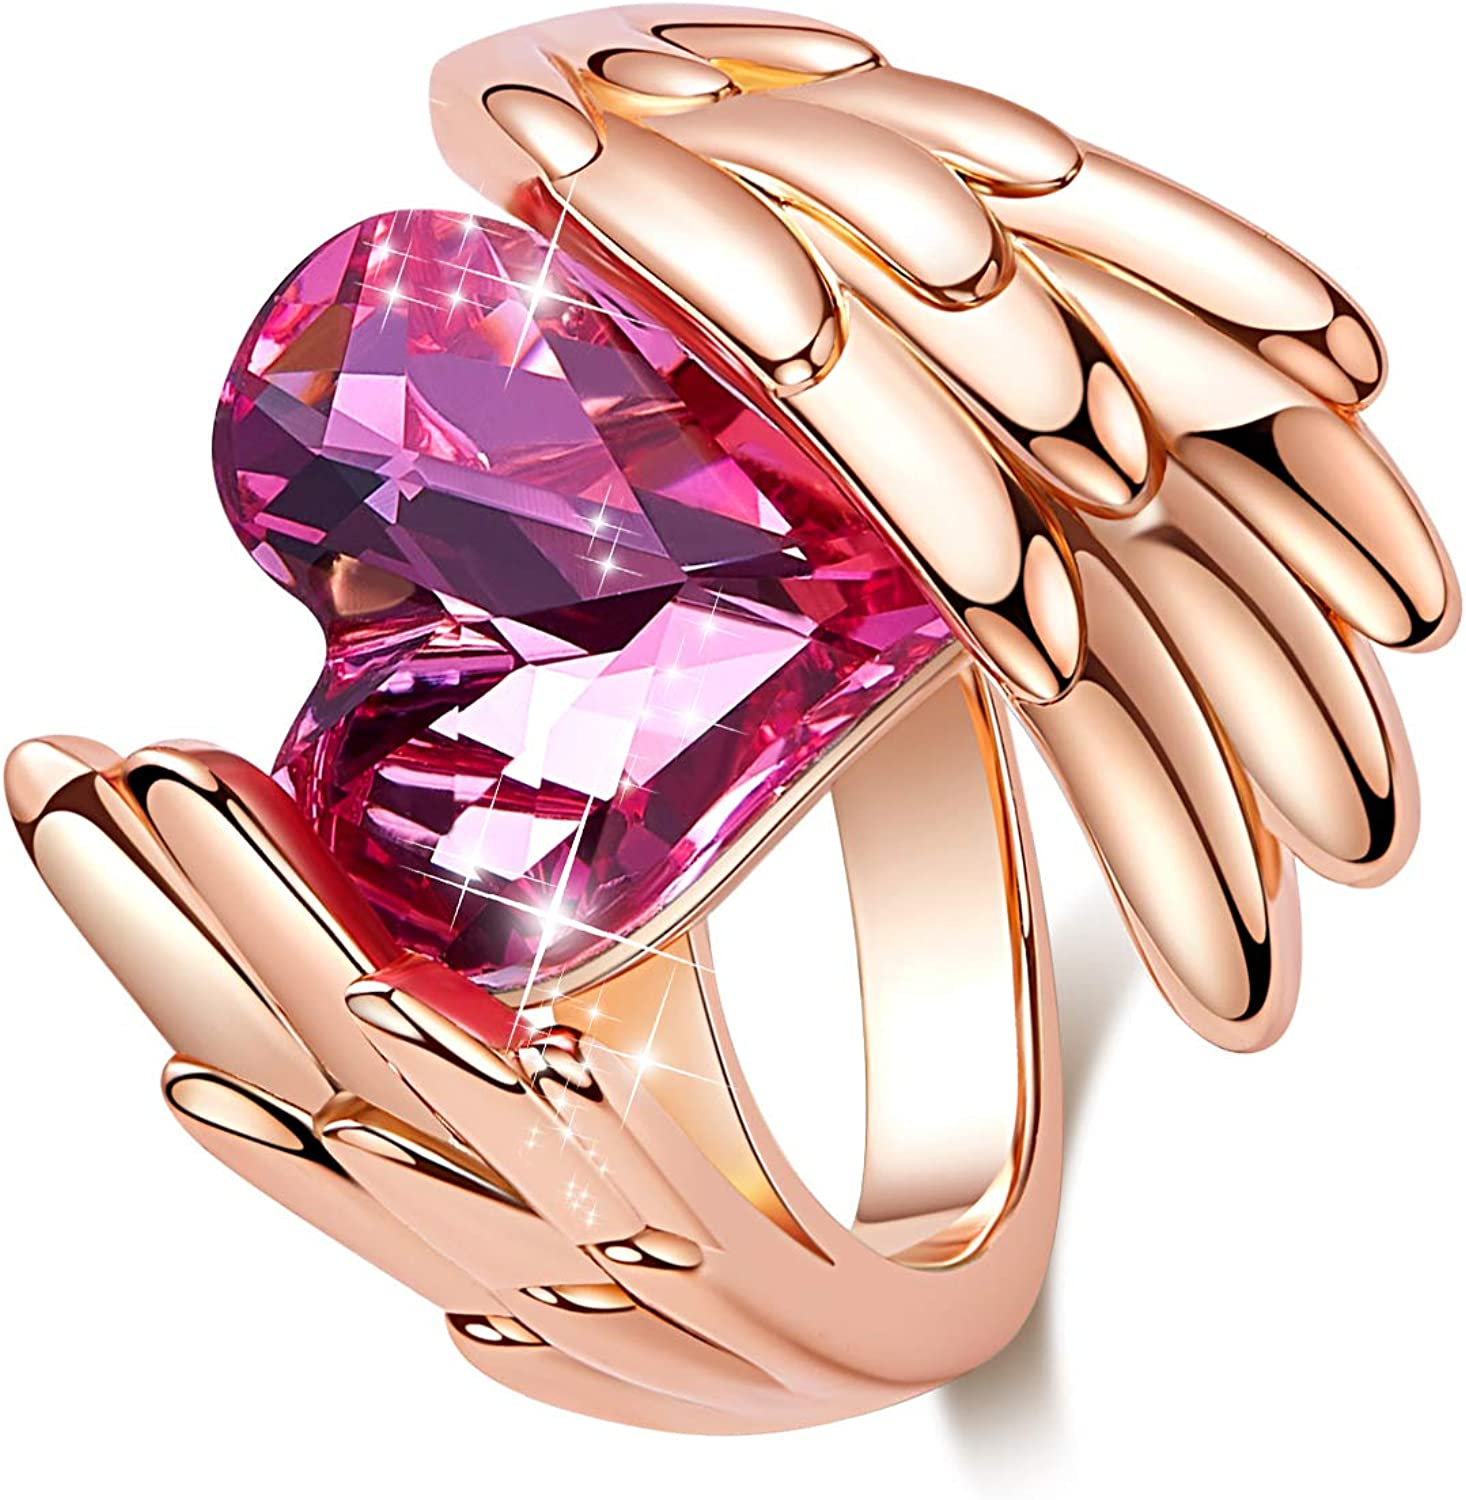 CDE Woman Elegant Rings Heart Popular brand Embellished Max 48% OFF Rose Shape Plated Gold